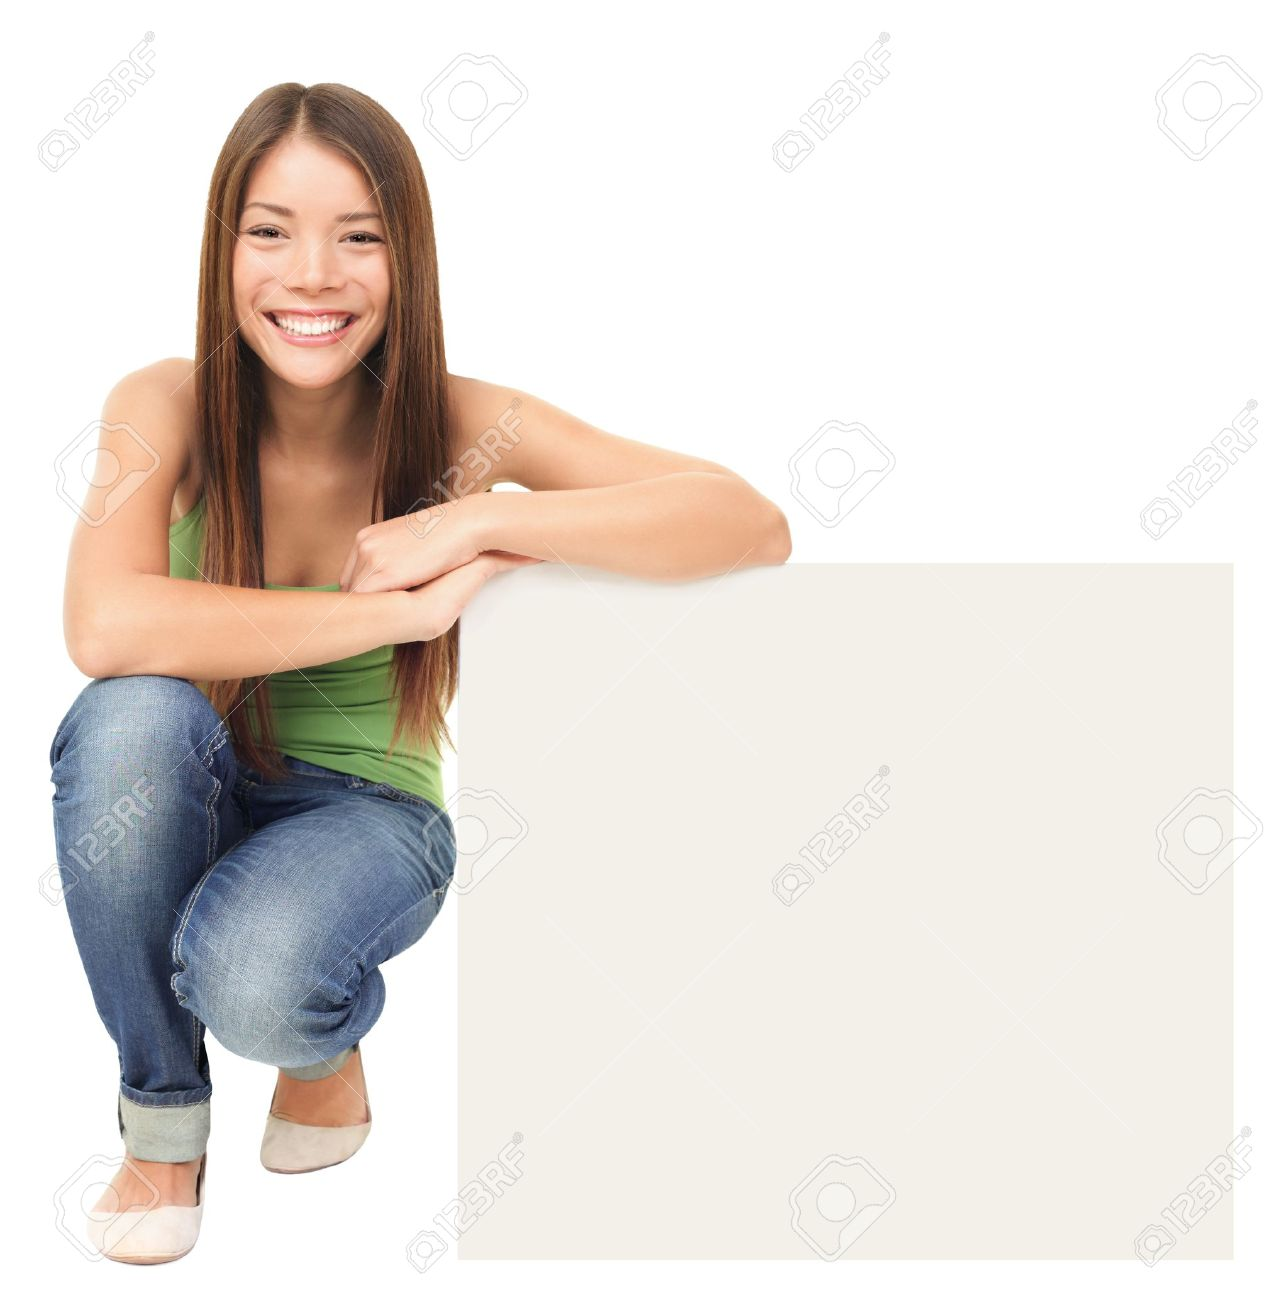 Woman sitting showing billboard sign. Cute casual young beautiful woman holding blank white commercial sign isolated on white background. Lovely fresh asian caucasian female model in full length. Stock Photo - 9091567